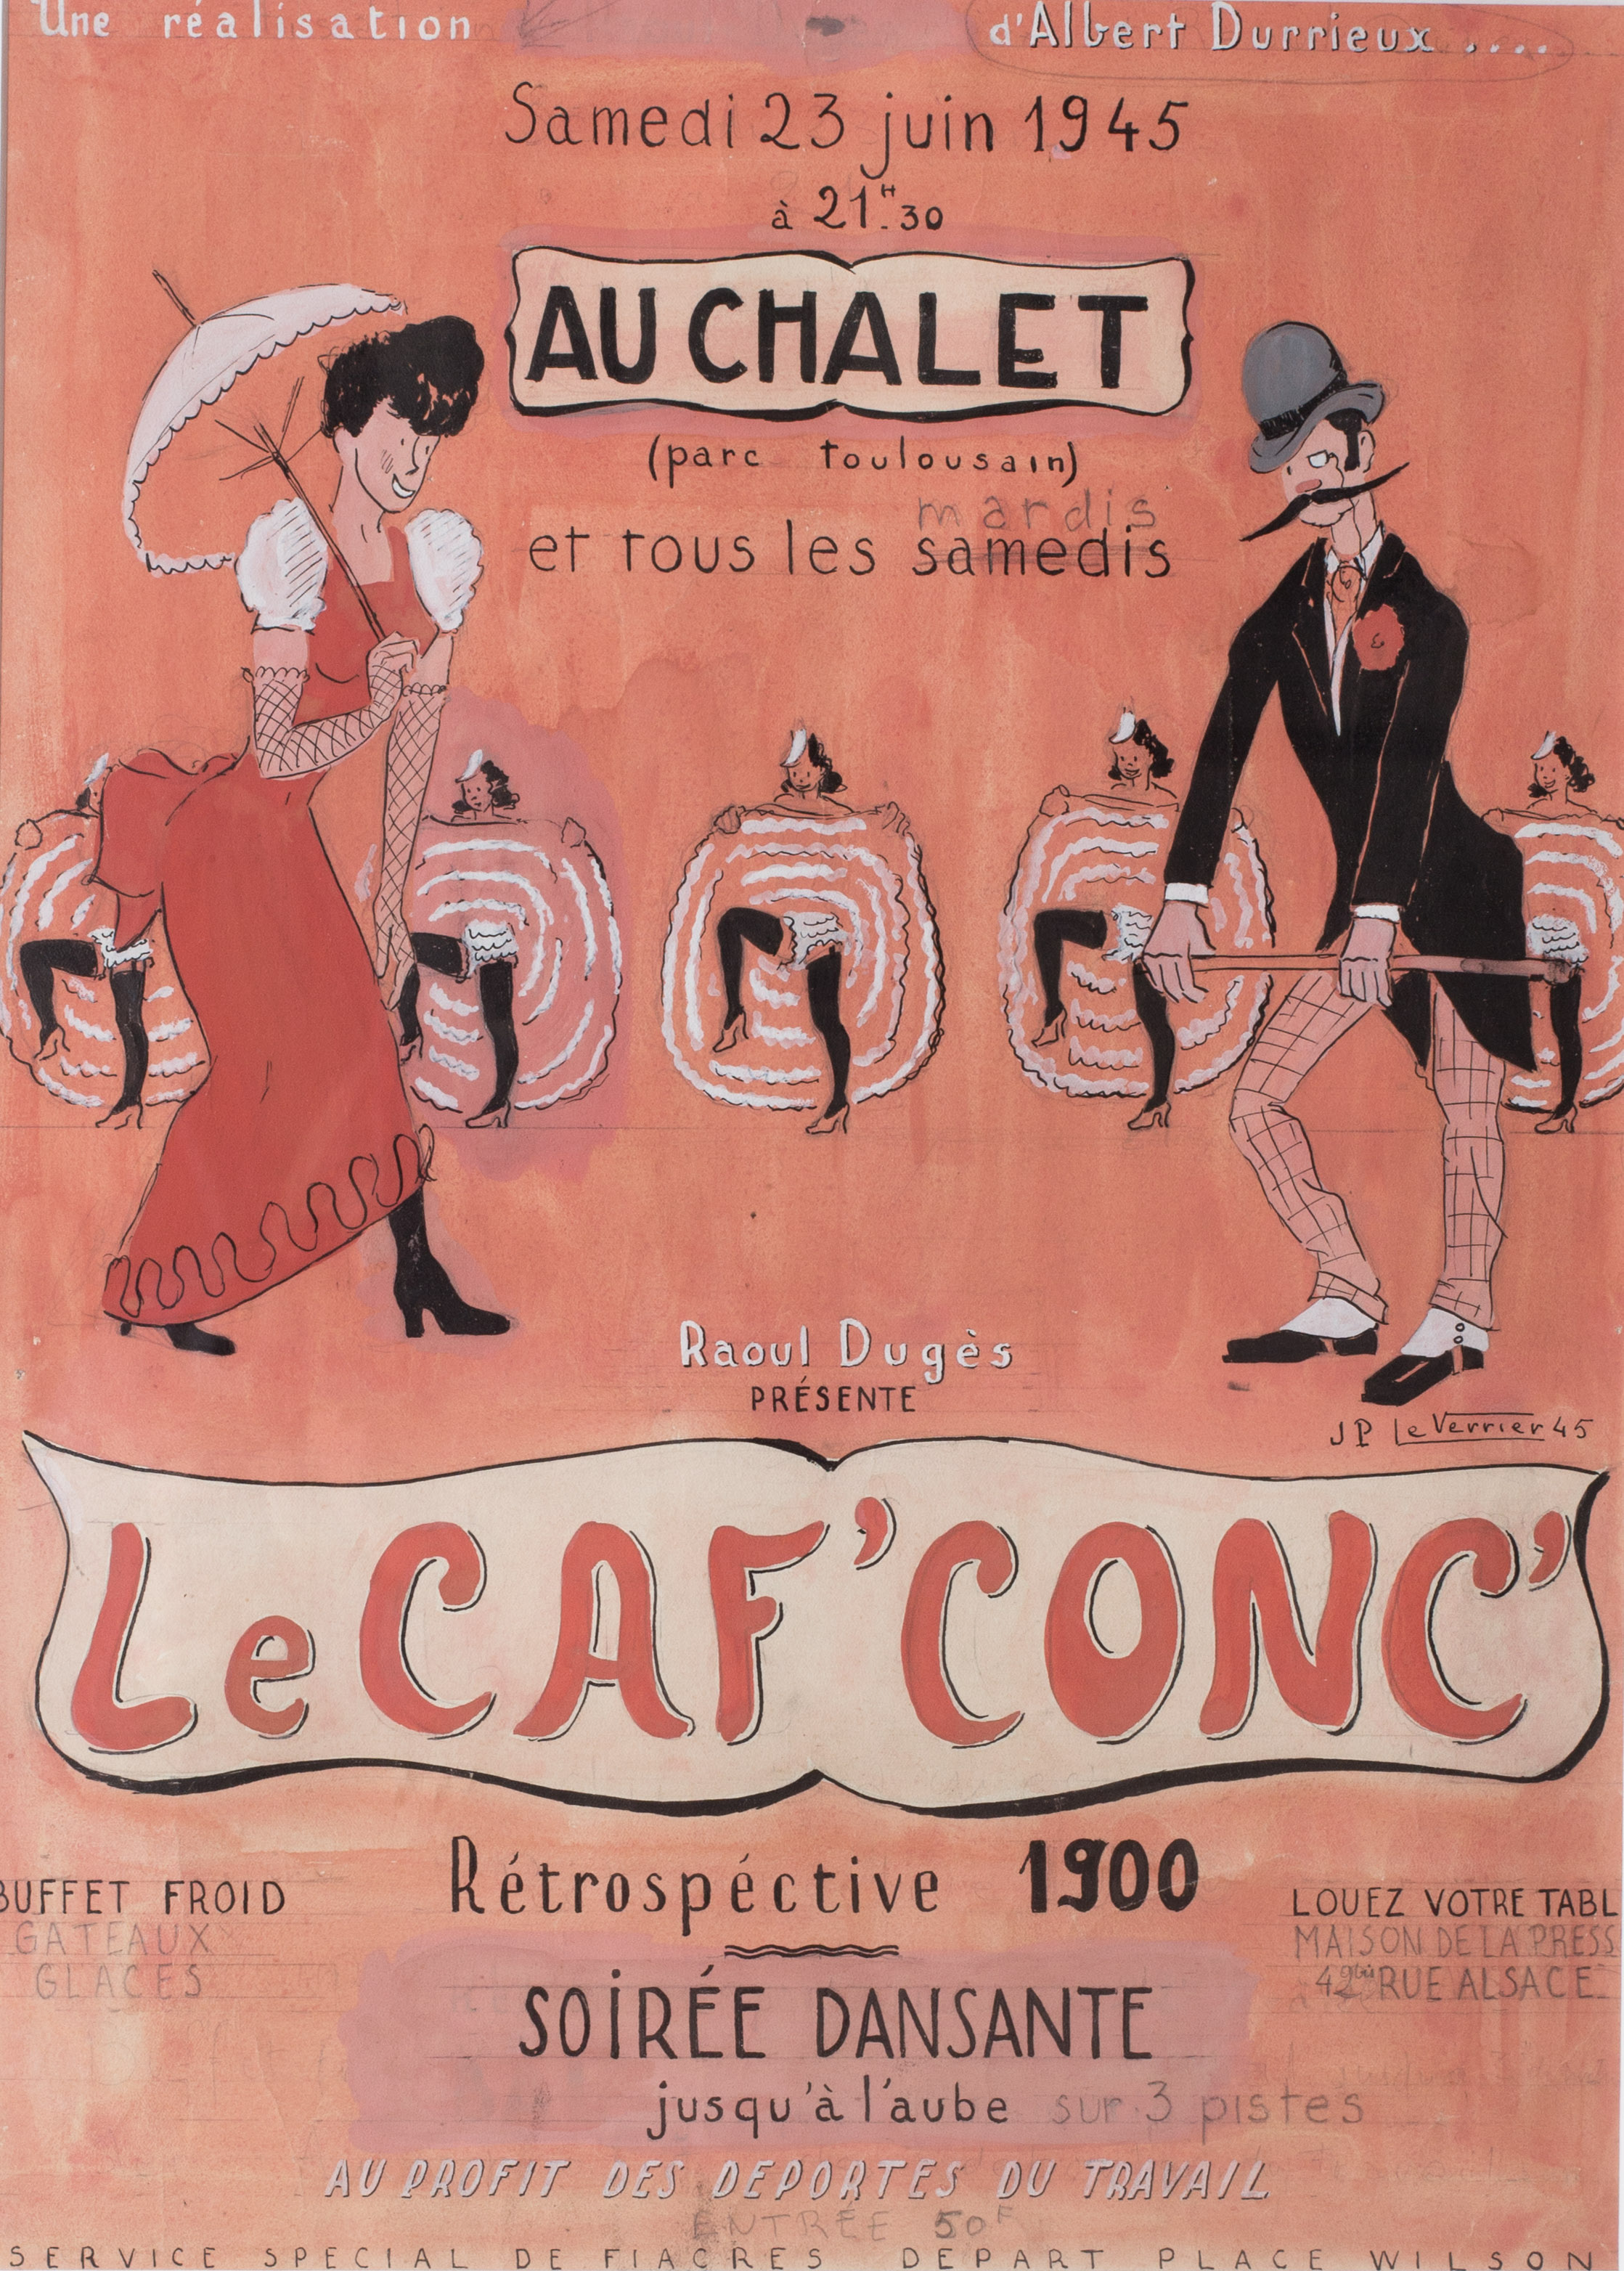 Le Caf' Conc   A poster design draft for a post-liberation costume ball (retrospective 1900) on 23rd June 1945  designed by Jean Paul Le Verrier (1922-1996)  With original pencil editing for the final copy   Pencil, ink and gouache  64.2 x 48.6cm.  Condition: A few small creases, otherwise in good order. In a newly limed wood frame and white mount behind perspex.   Price: £600